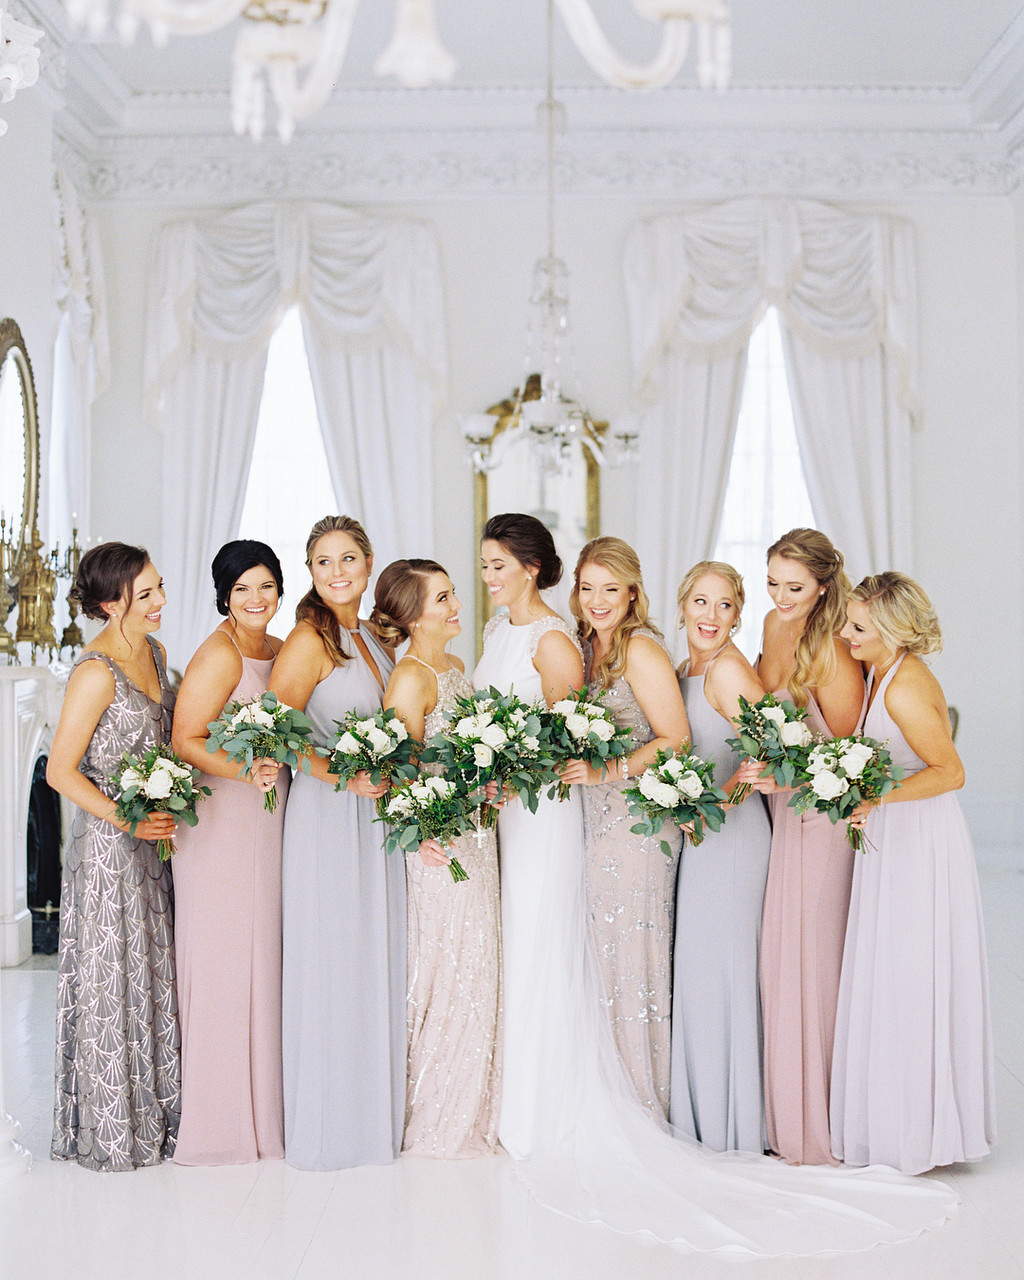 Bridesmaids are the girls have stood by the bride through many phases of life. They're the girls that have shared many laughs, tears